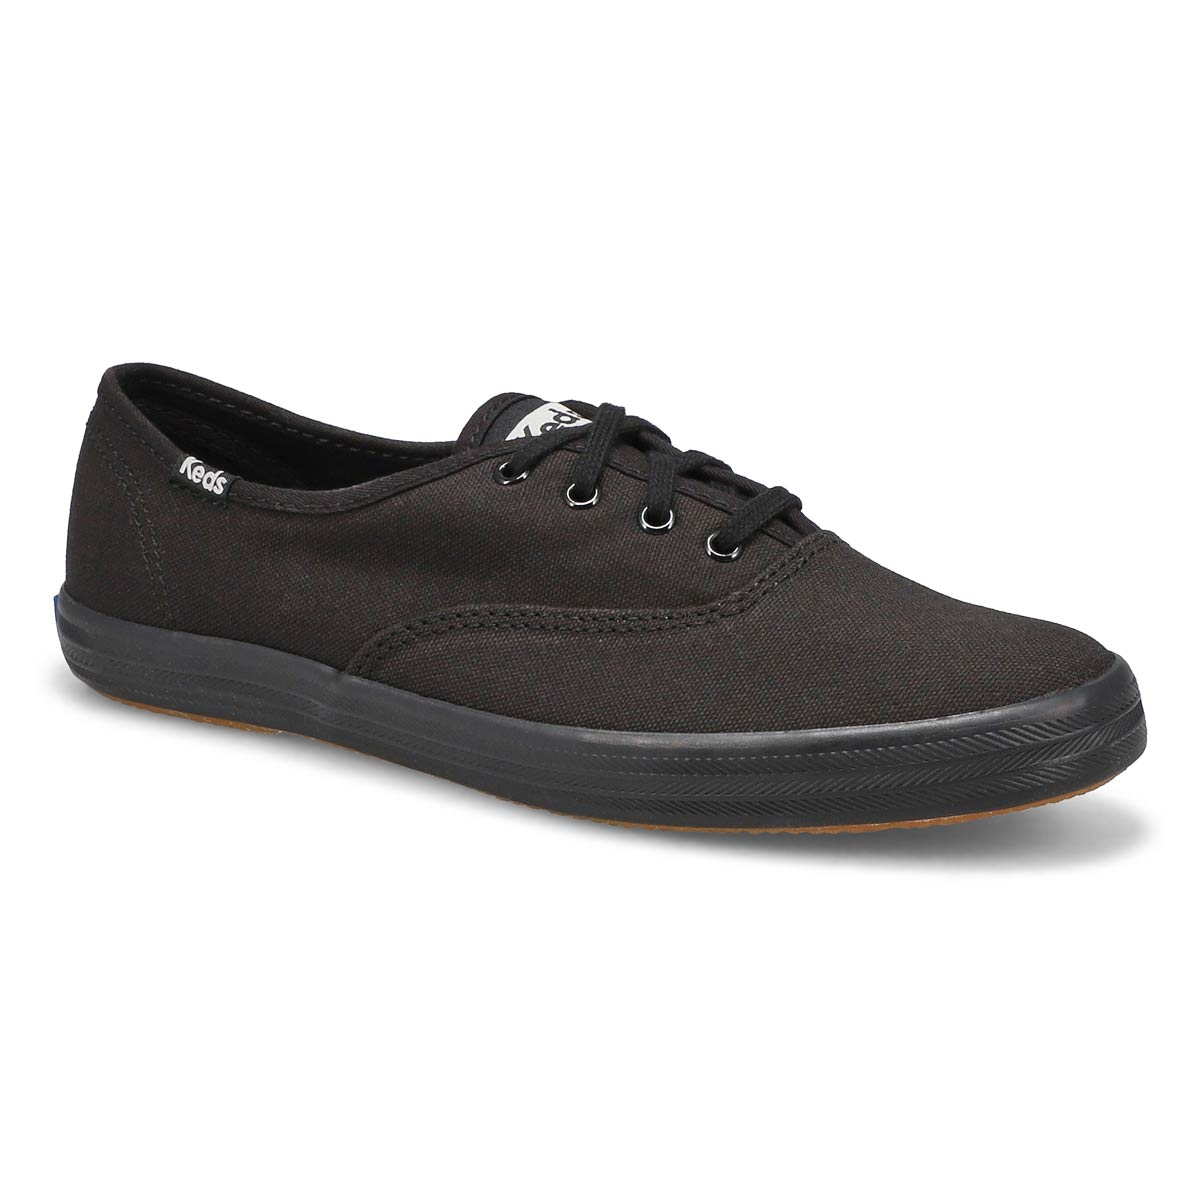 Women's CHAMPION OXFORD black/black CVO sneakers